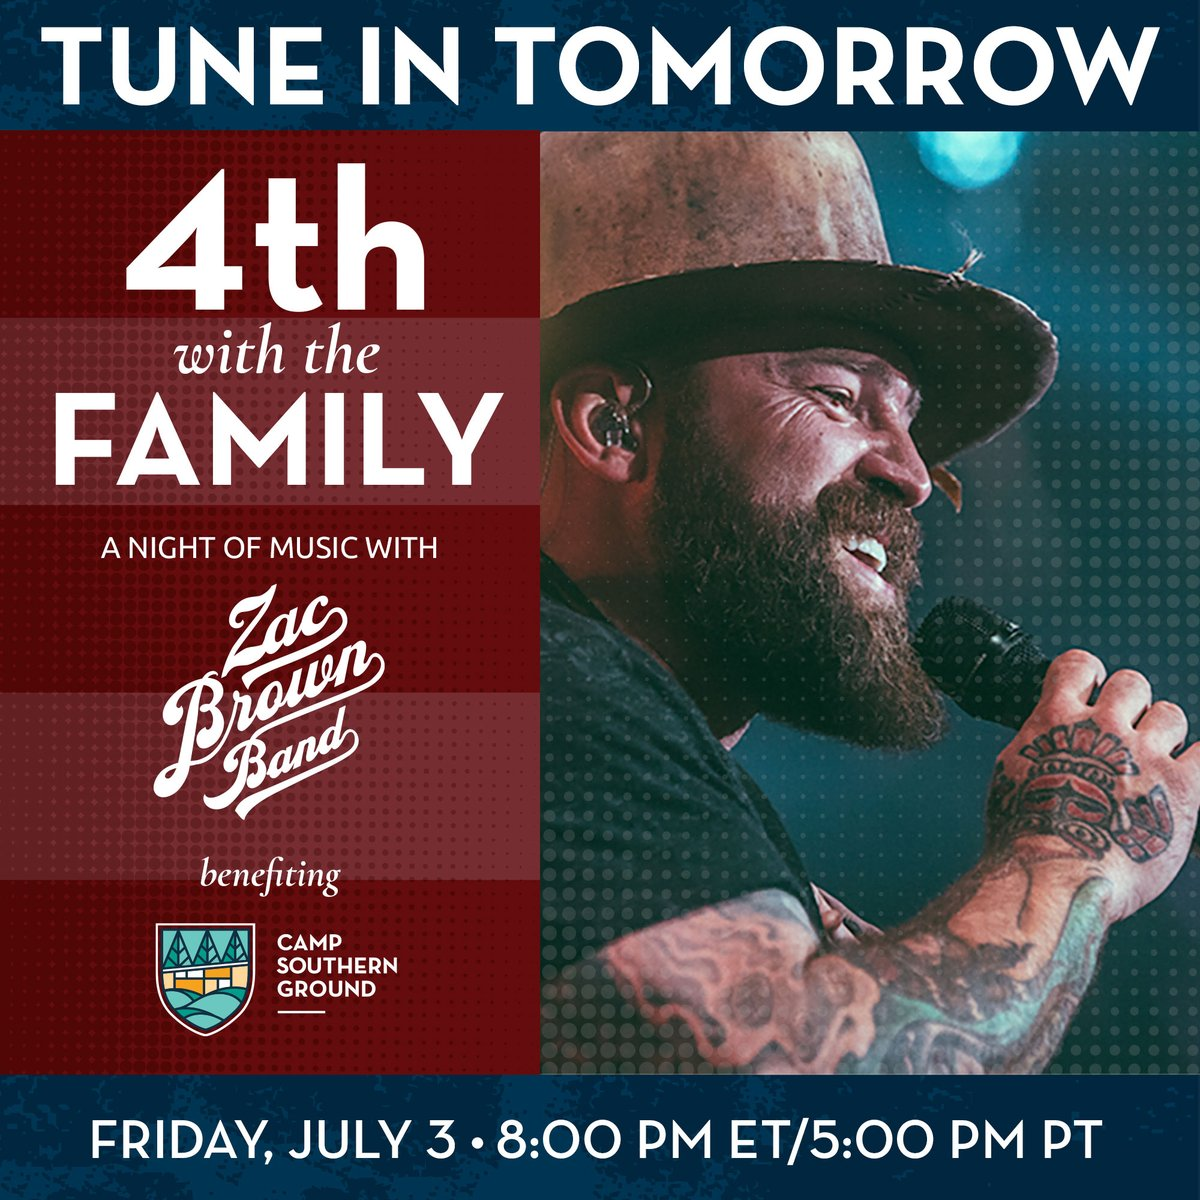 Tune in tomorrow as we kick off Independence Day weekend with @zacbrownband to support the mental health and wellbeing of our nation's heroes through @campsoutherngrd. #4thwiththefamily #warriorwellbeing  RSVP: https://t.co/YFOEBV6oyF DONATE: https://t.co/y46vcopWWk https://t.co/9LGnYeHKXP